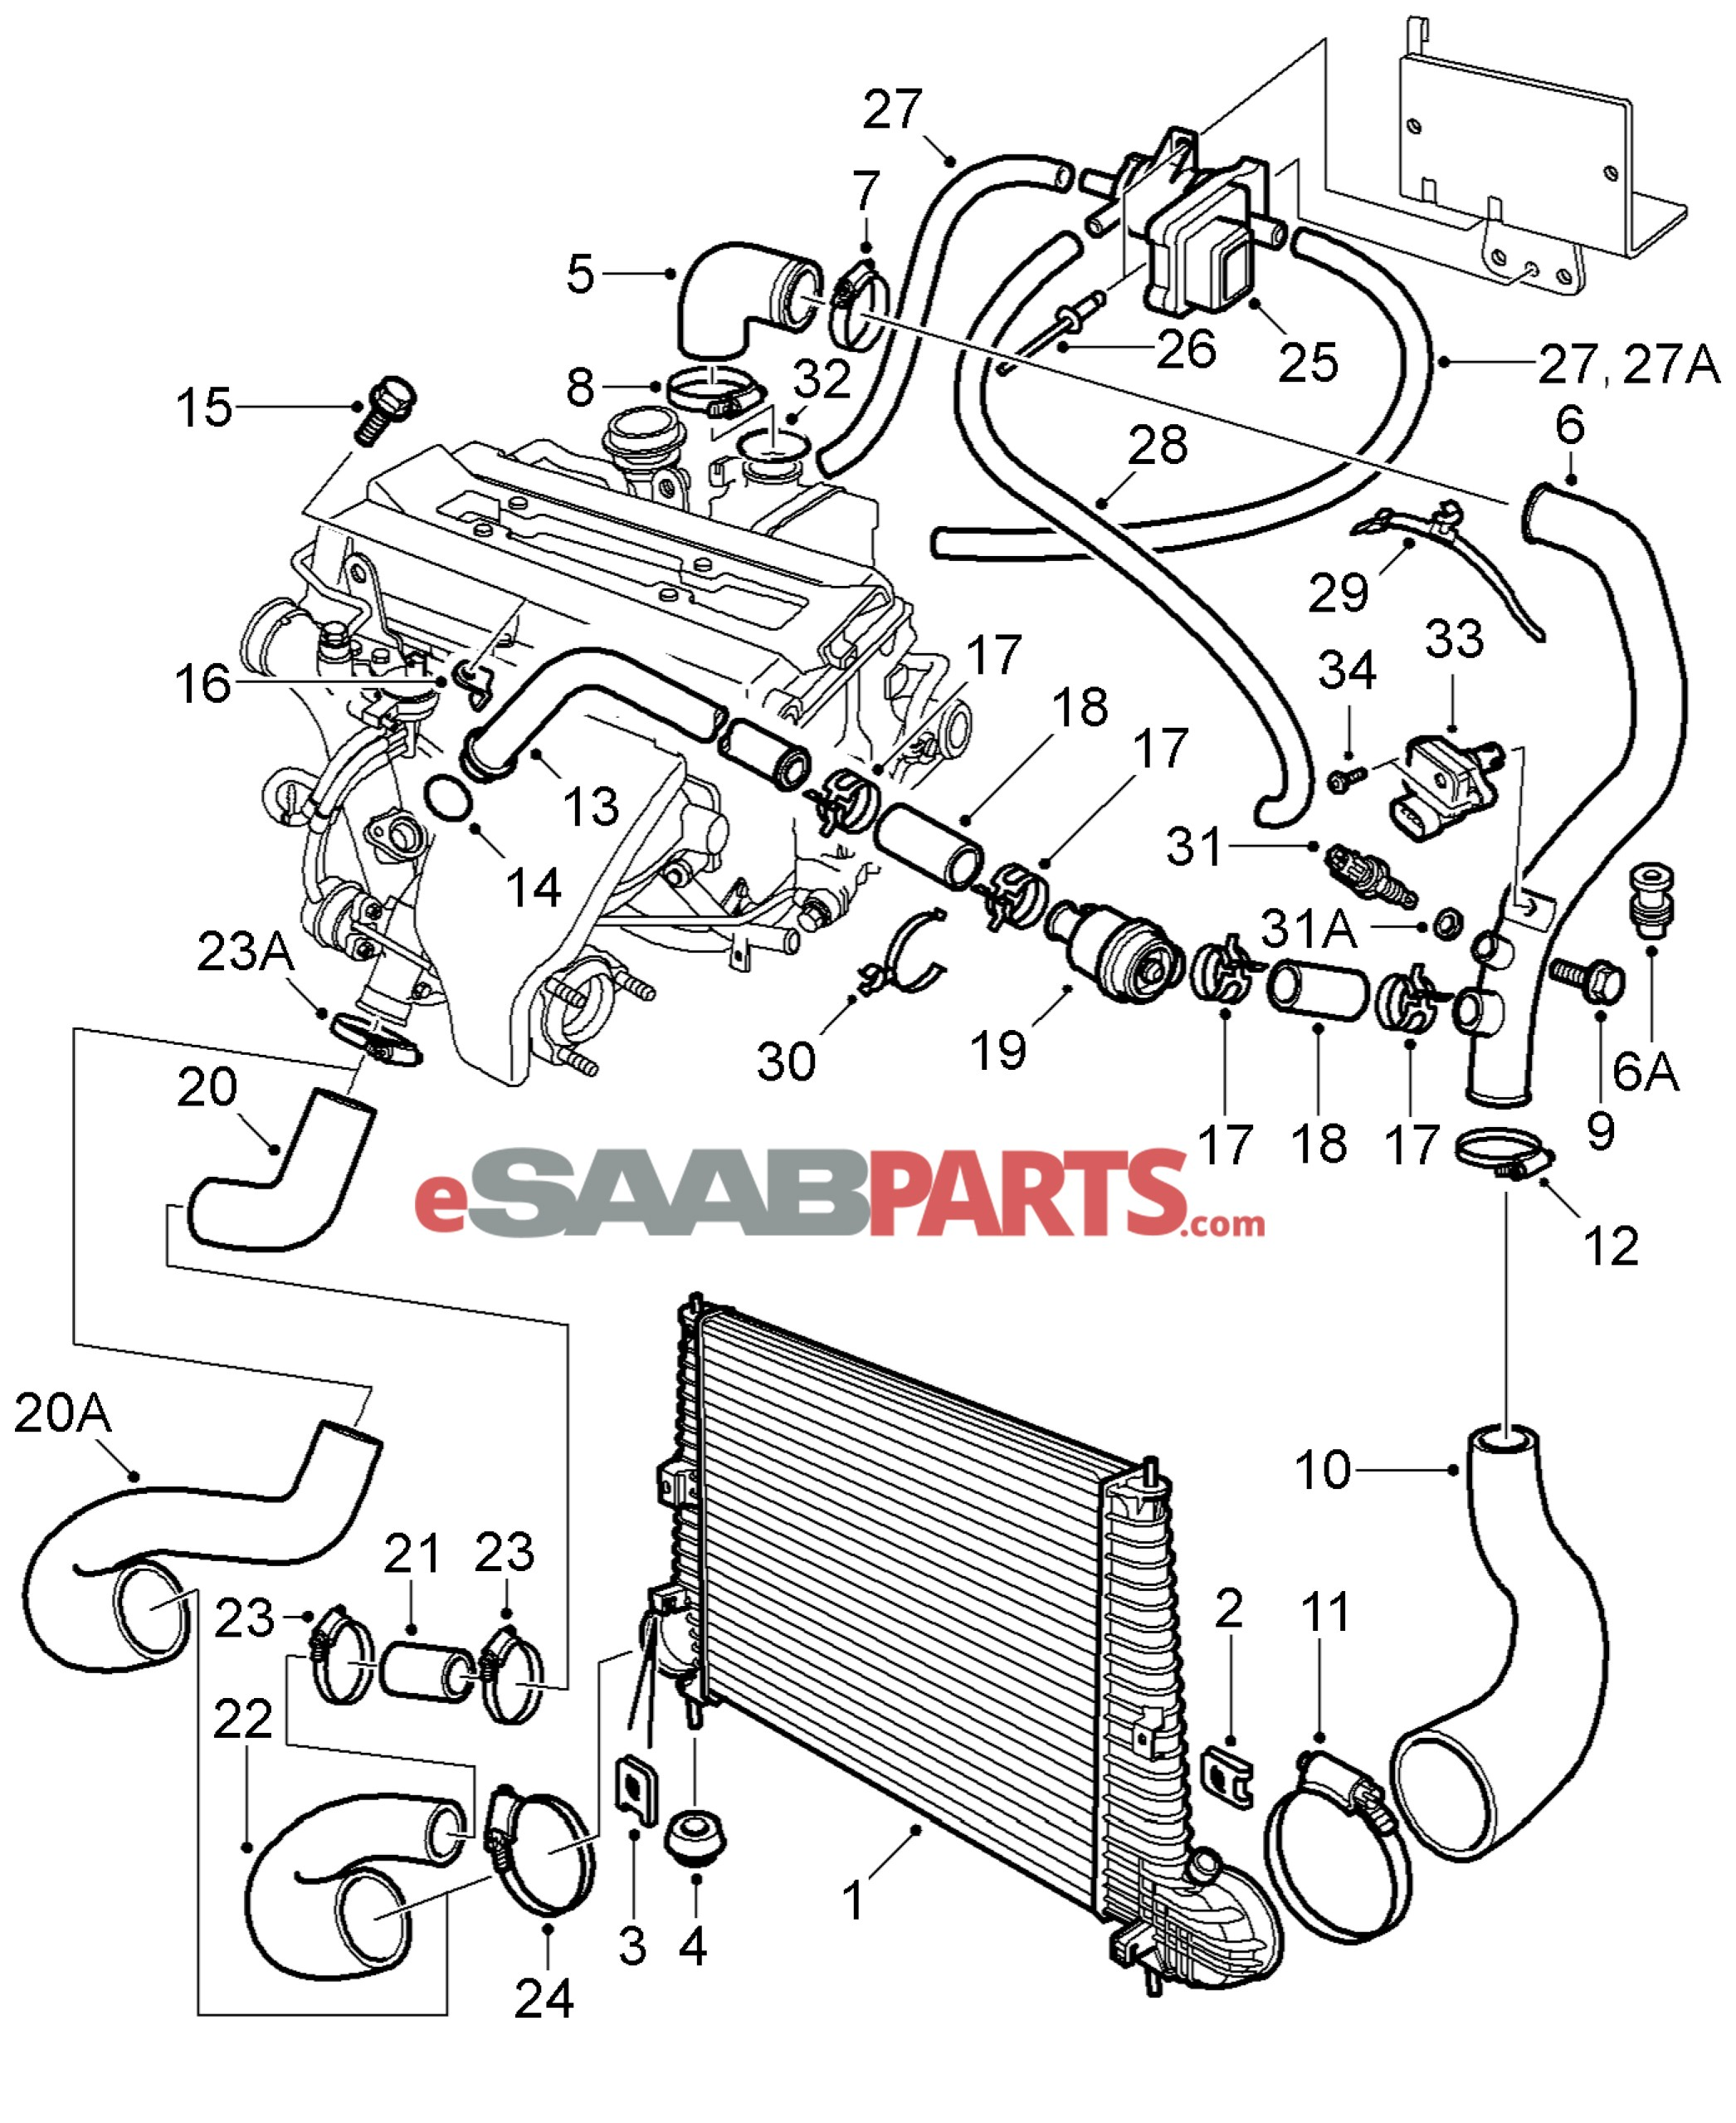 1999 saab engine diagram wiring data u2022 rh maxi mail co 1993 saab 9 3 engine